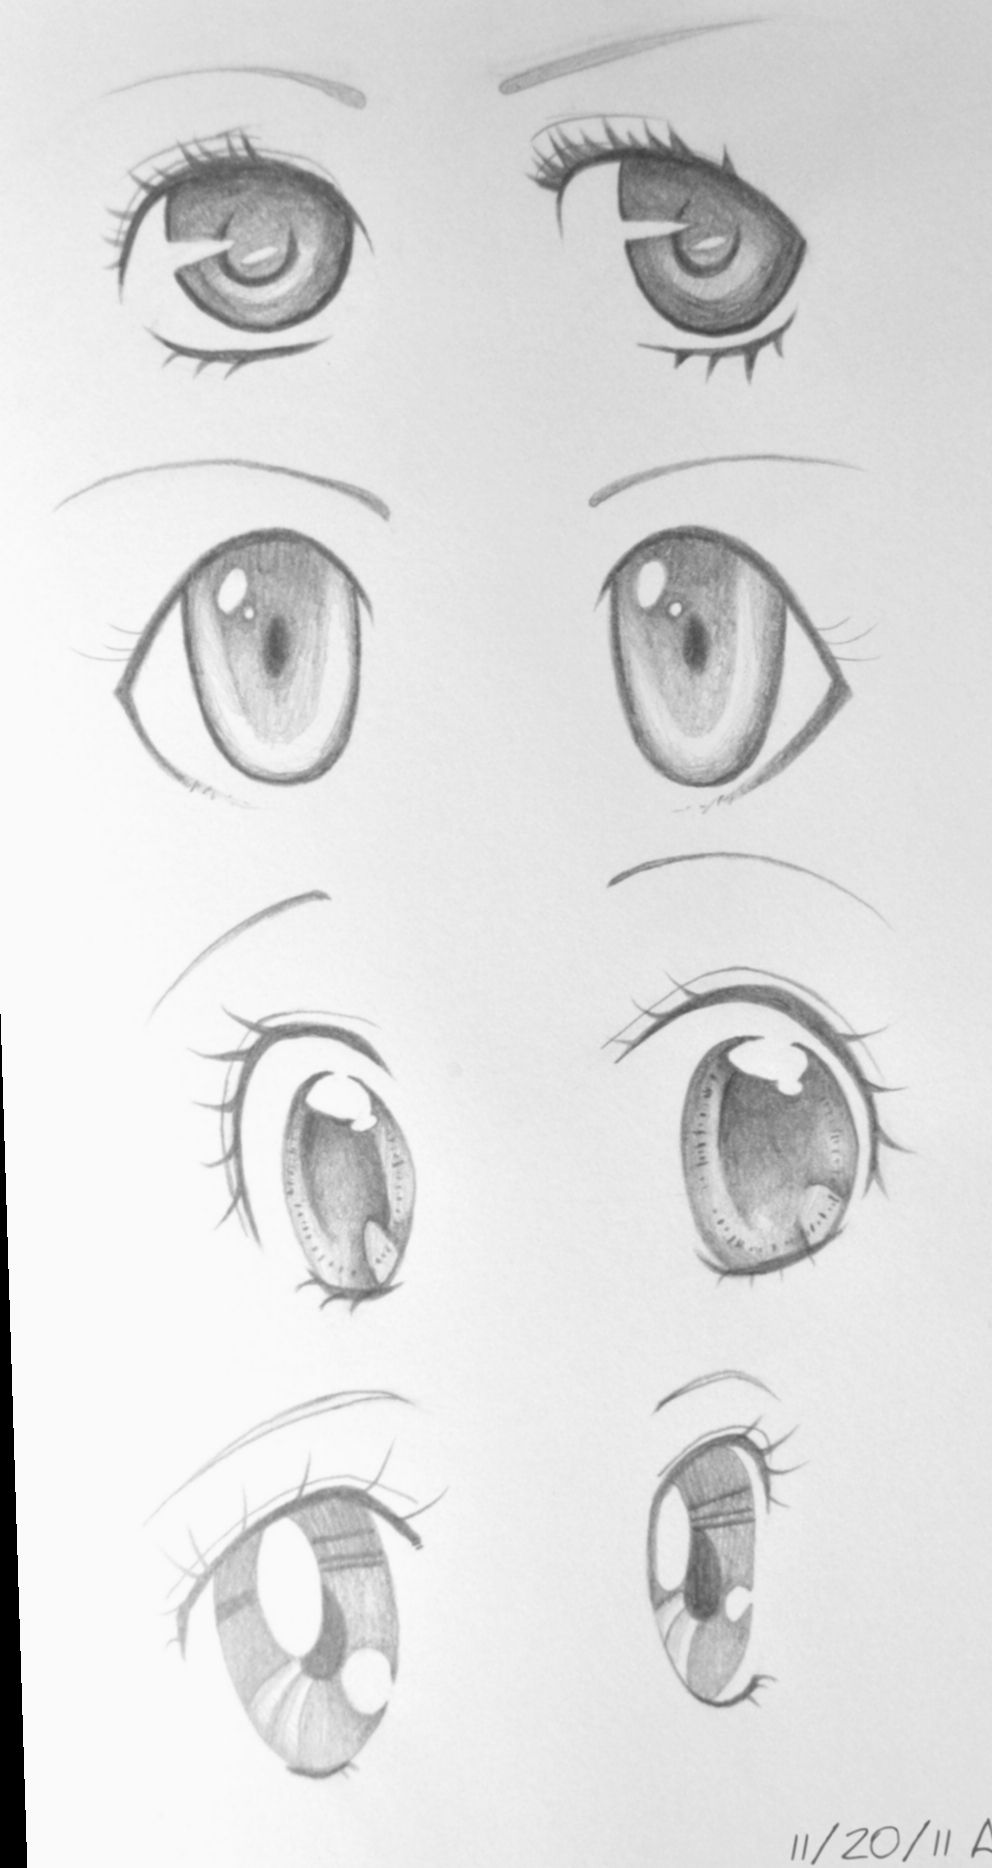 13 Anime Eyes Kawaii Draw Anime Eye Drawing Anime Drawings Sketches Anime Sketch